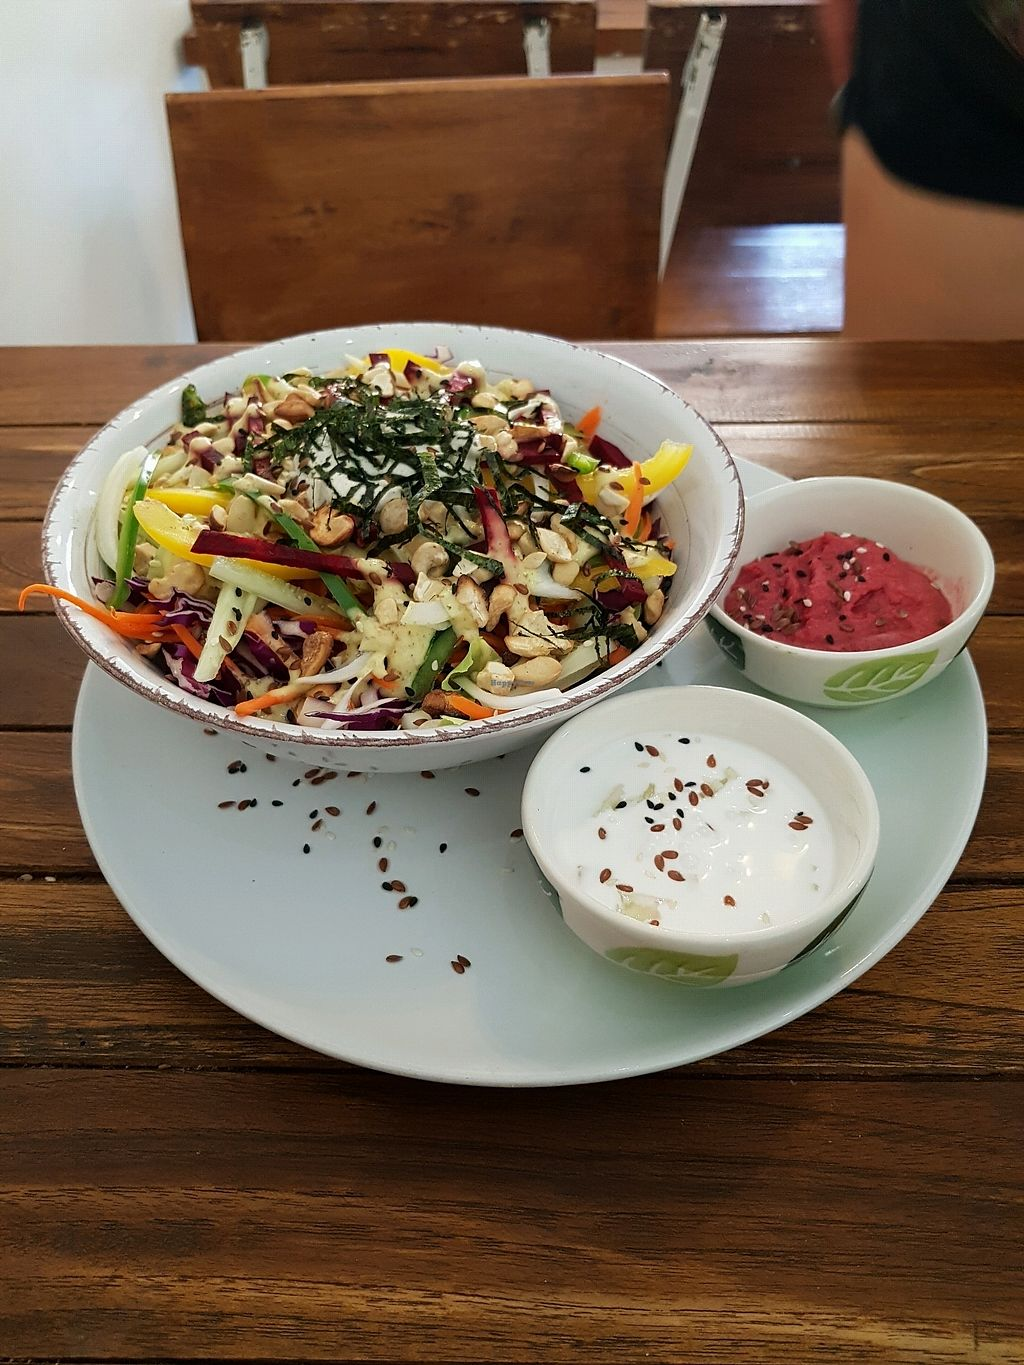 """Photo of Pure Vegan Heaven  by <a href=""""/members/profile/vegatleticas"""">vegatleticas</a> <br/>Rawsome Bowl <br/> February 25, 2018  - <a href='/contact/abuse/image/72425/363449'>Report</a>"""